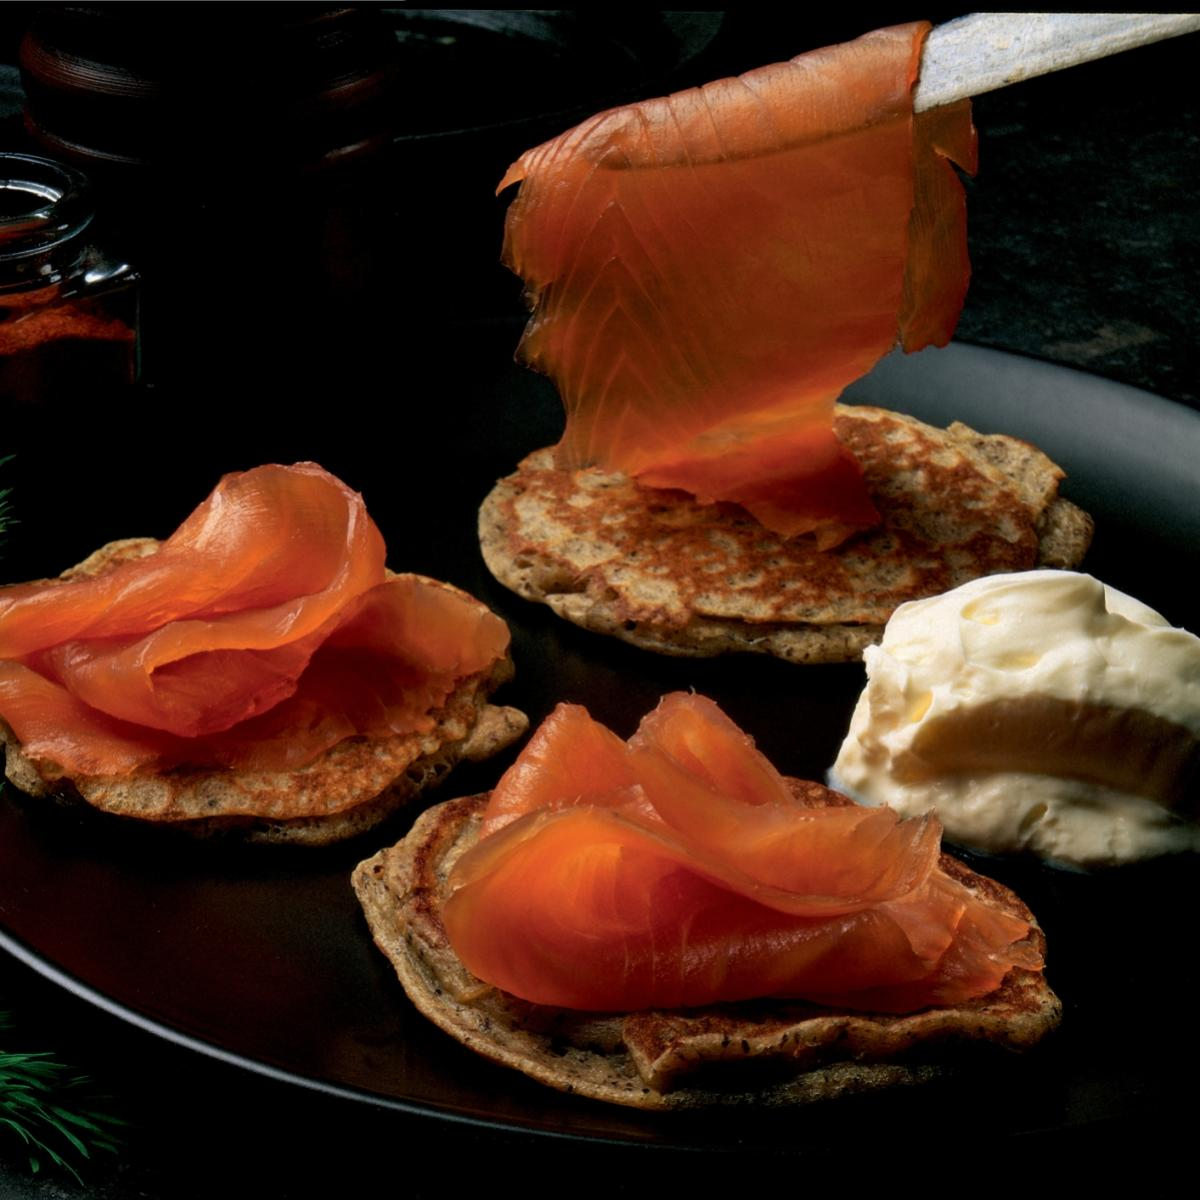 A picture of Delia's Warm Potato Blinis with Smoked Salmon, Crème Fraîche and Dill recipe